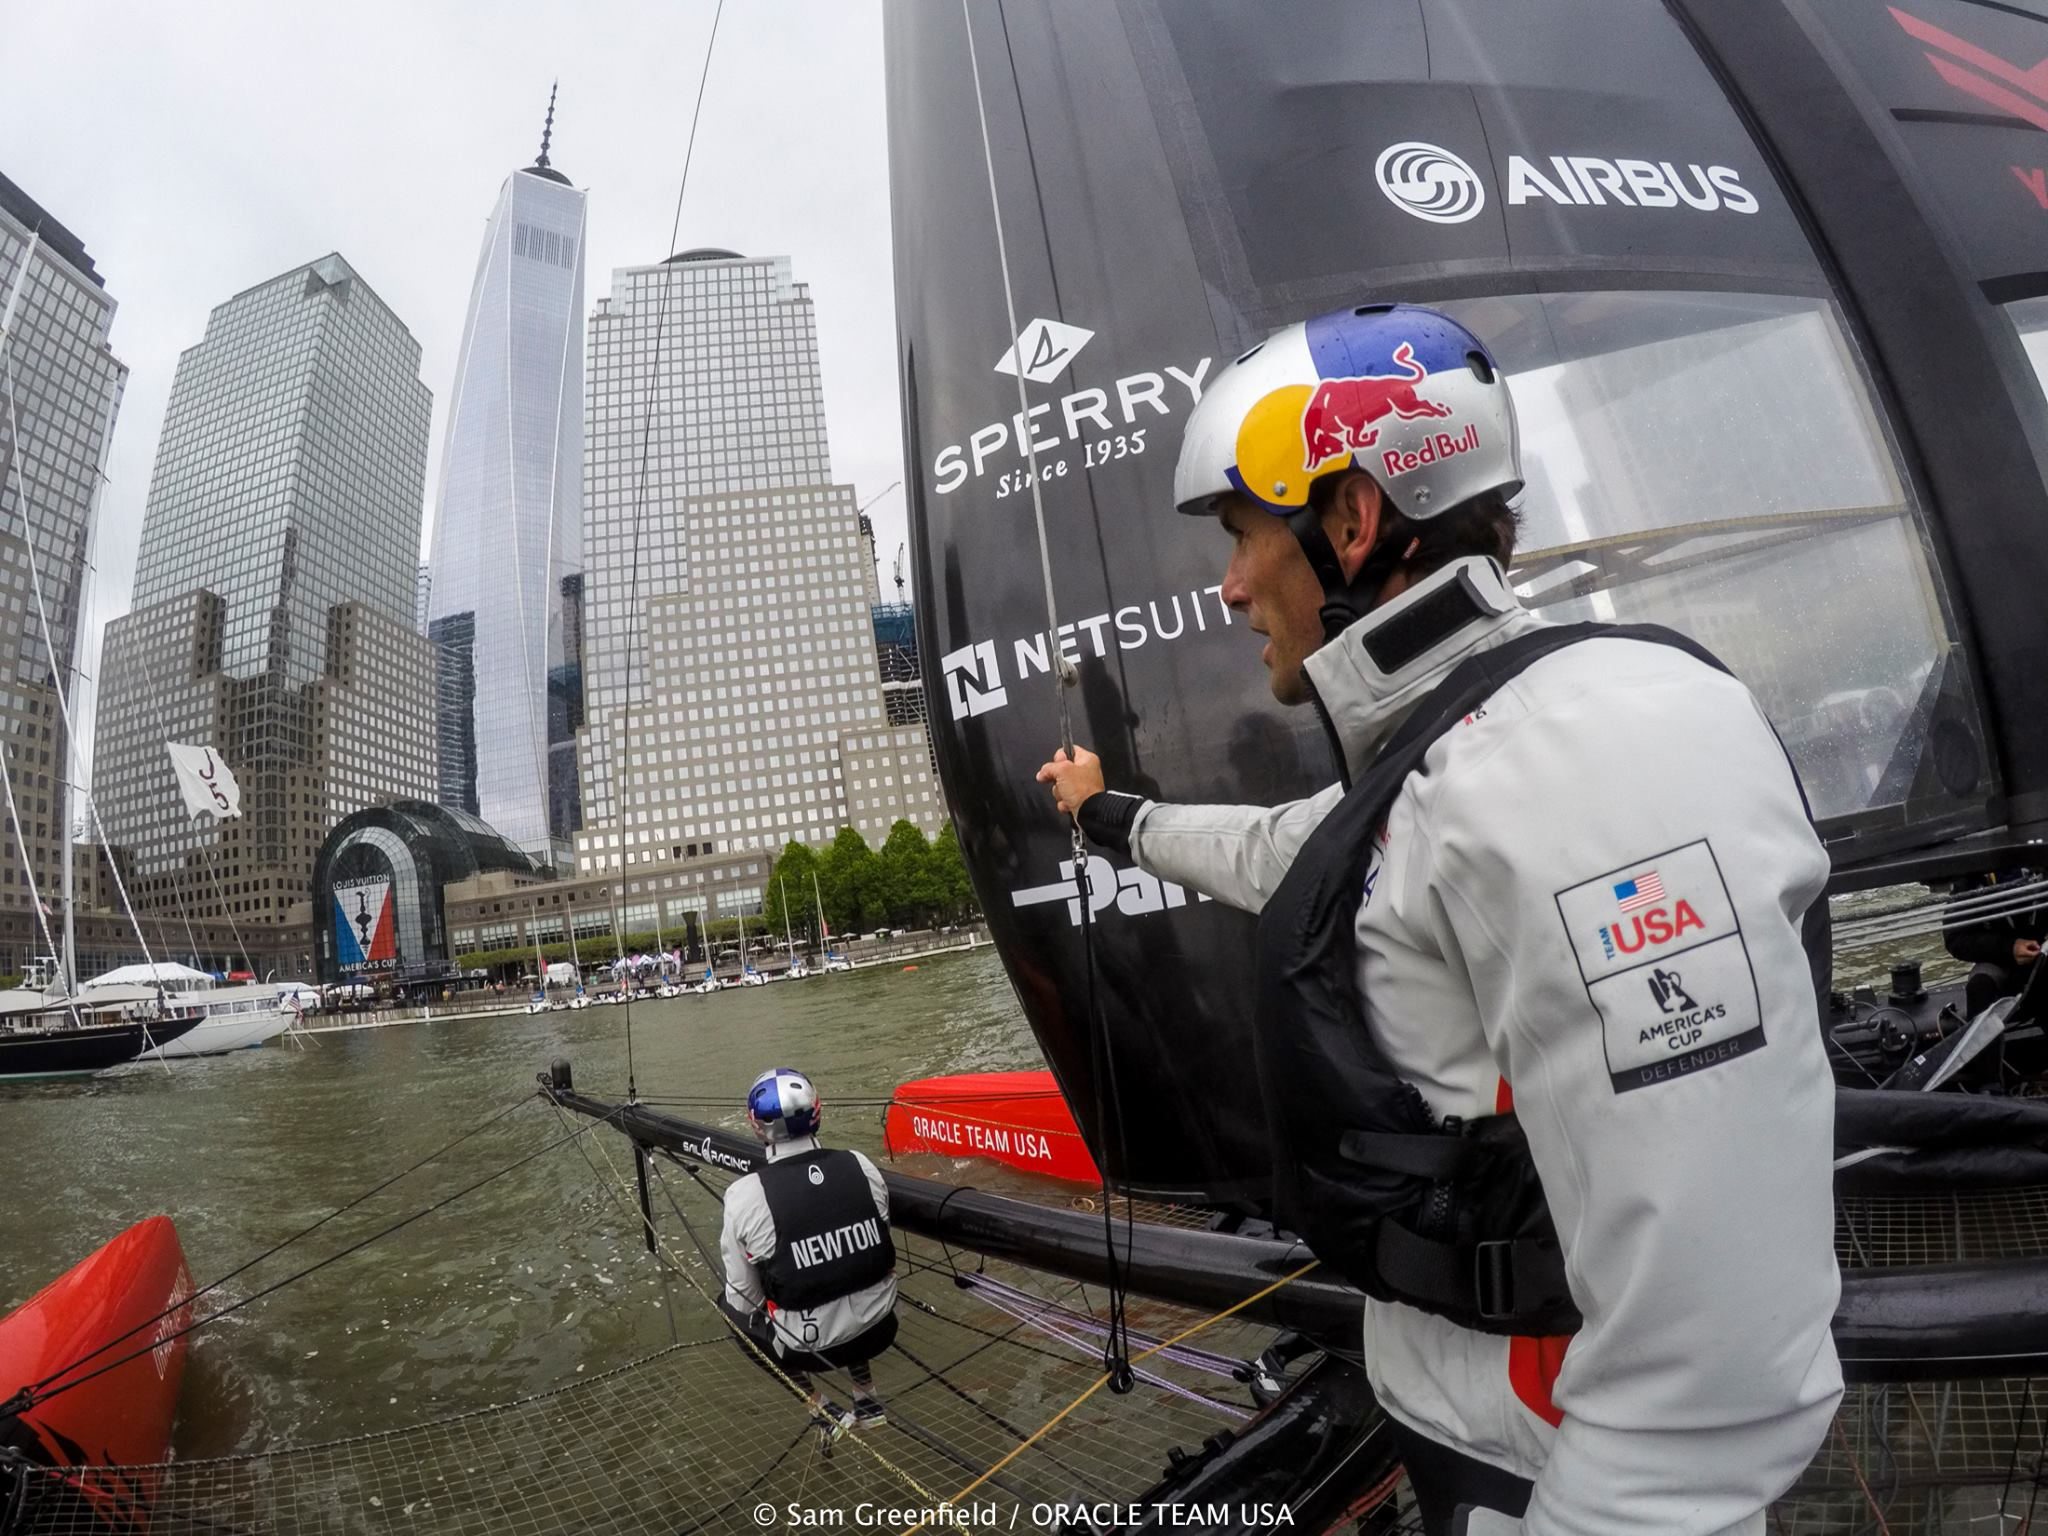 America's Cup World Series Racing on the Hudson - Is that the Problem? by  in